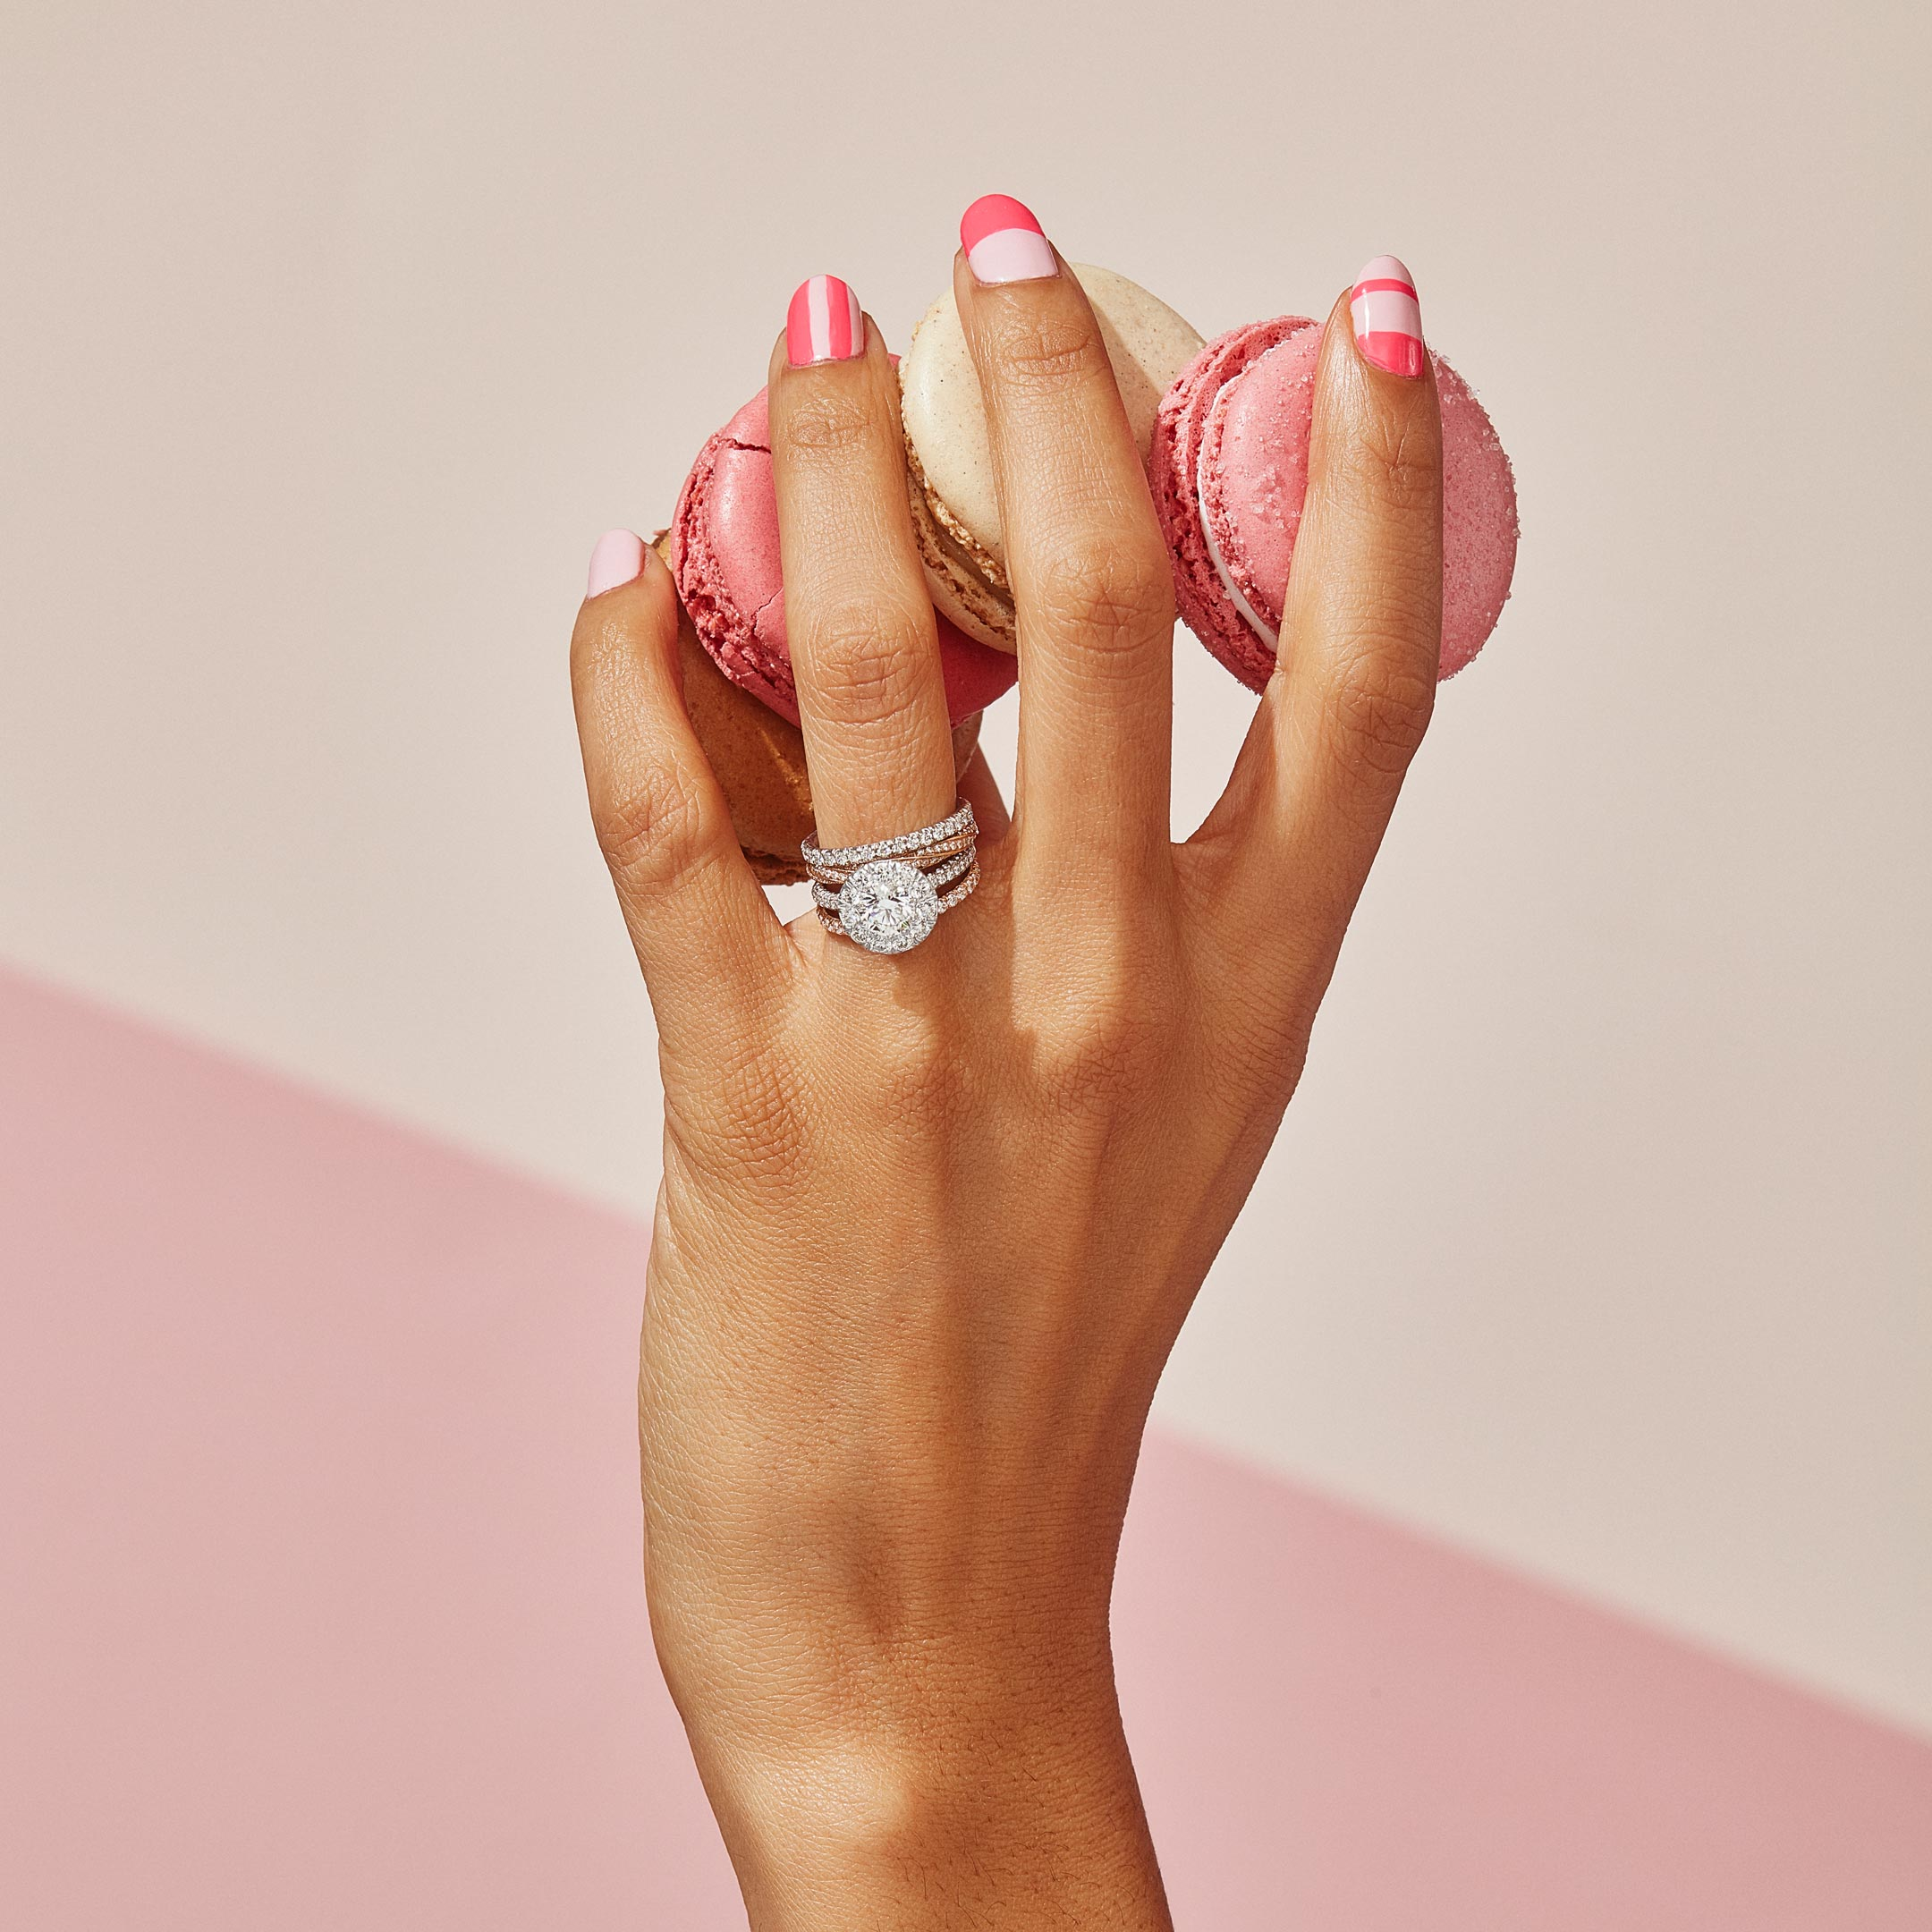 Jacqueline Round Brilliant Seamless Solitaire™ Engagement Ring with a diamond pavé band in Platinum Hands with Macaroons Lifestyle by Oui by Jean Dousset